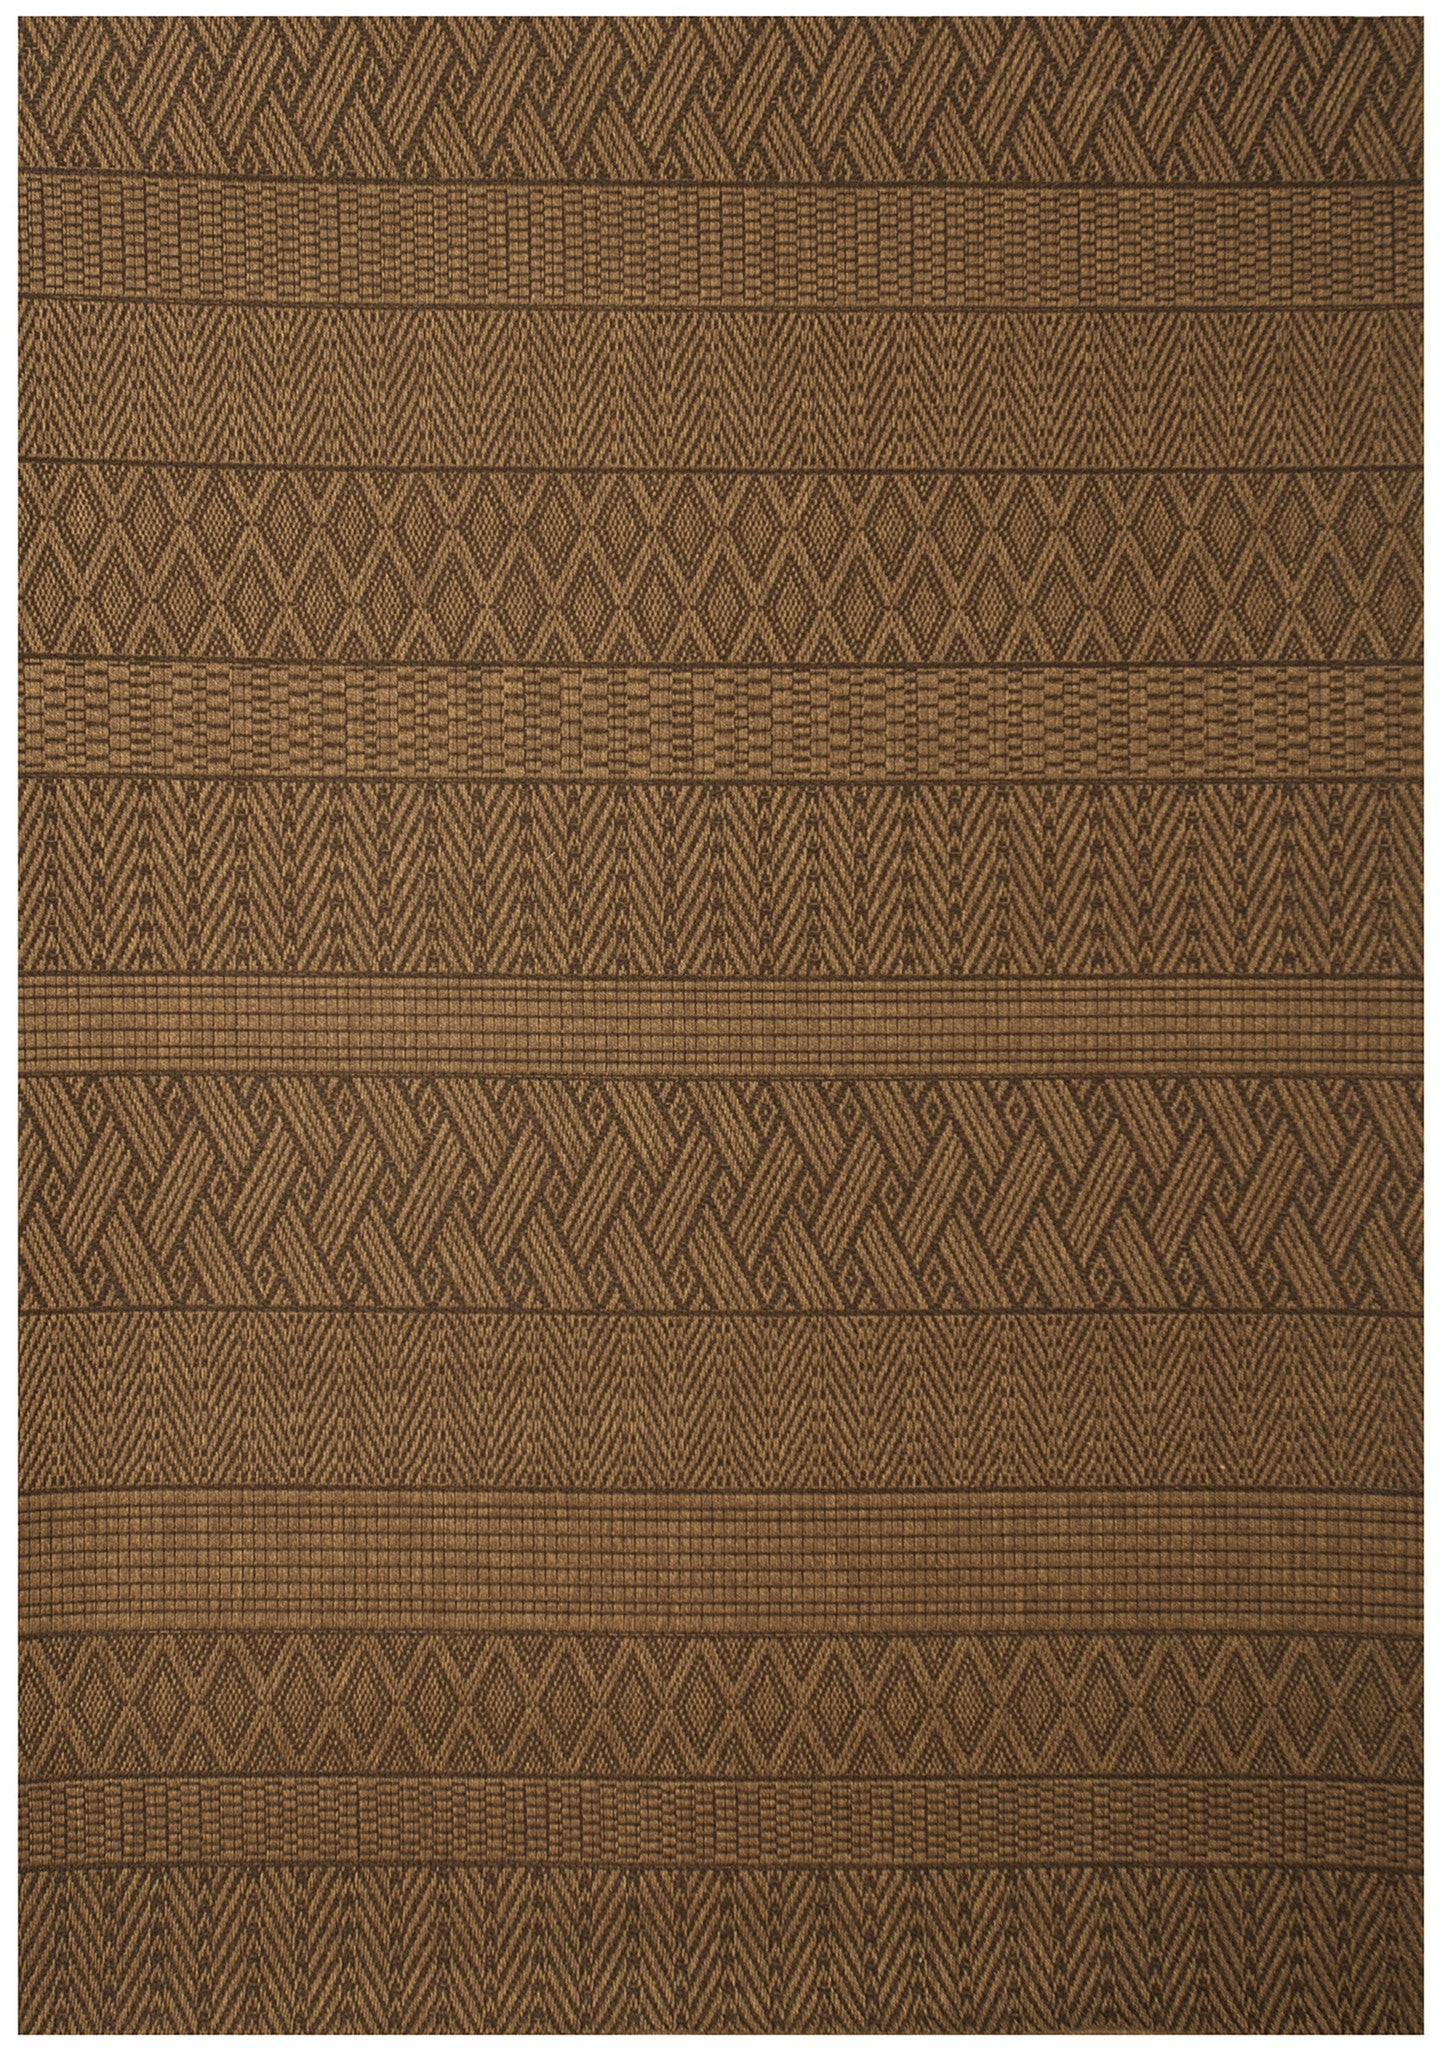 Modern Brown and Tan Multi-Pattern Indoor / Outdoor Rug - Woodwaves